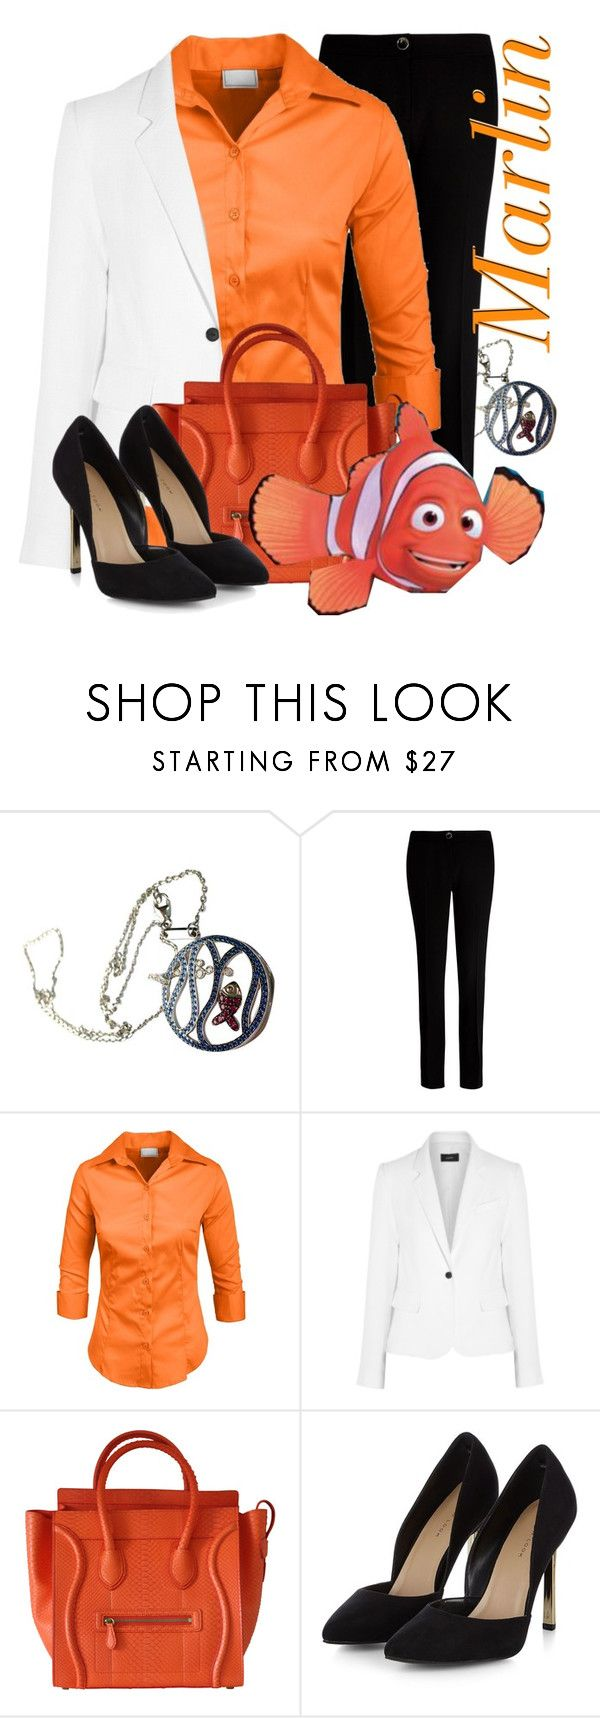 """""""Marlin (Finding Nemo)"""" by monica-diaz-1 ❤ liked on Polyvore featuring Chopard, Ted Baker, Joseph and CÉLINE"""